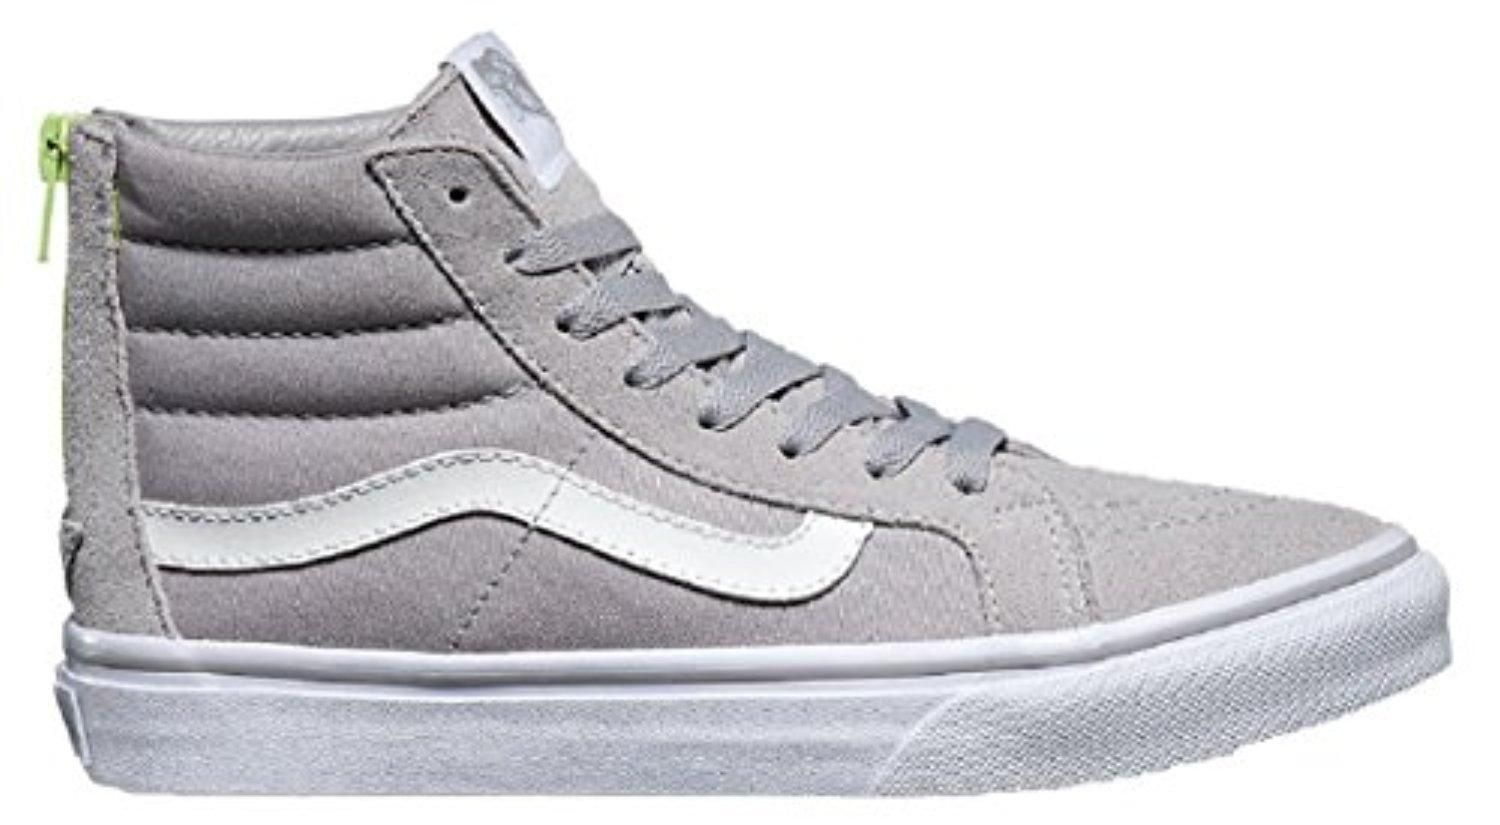 5f5320a588728 Vans Sk8-Hi Slim Zip (7.0 D(M) US Mens/ 8.5 B(M) US Womens, (Pop) Silver  Sconce) - Brought to you by Avarsha.com